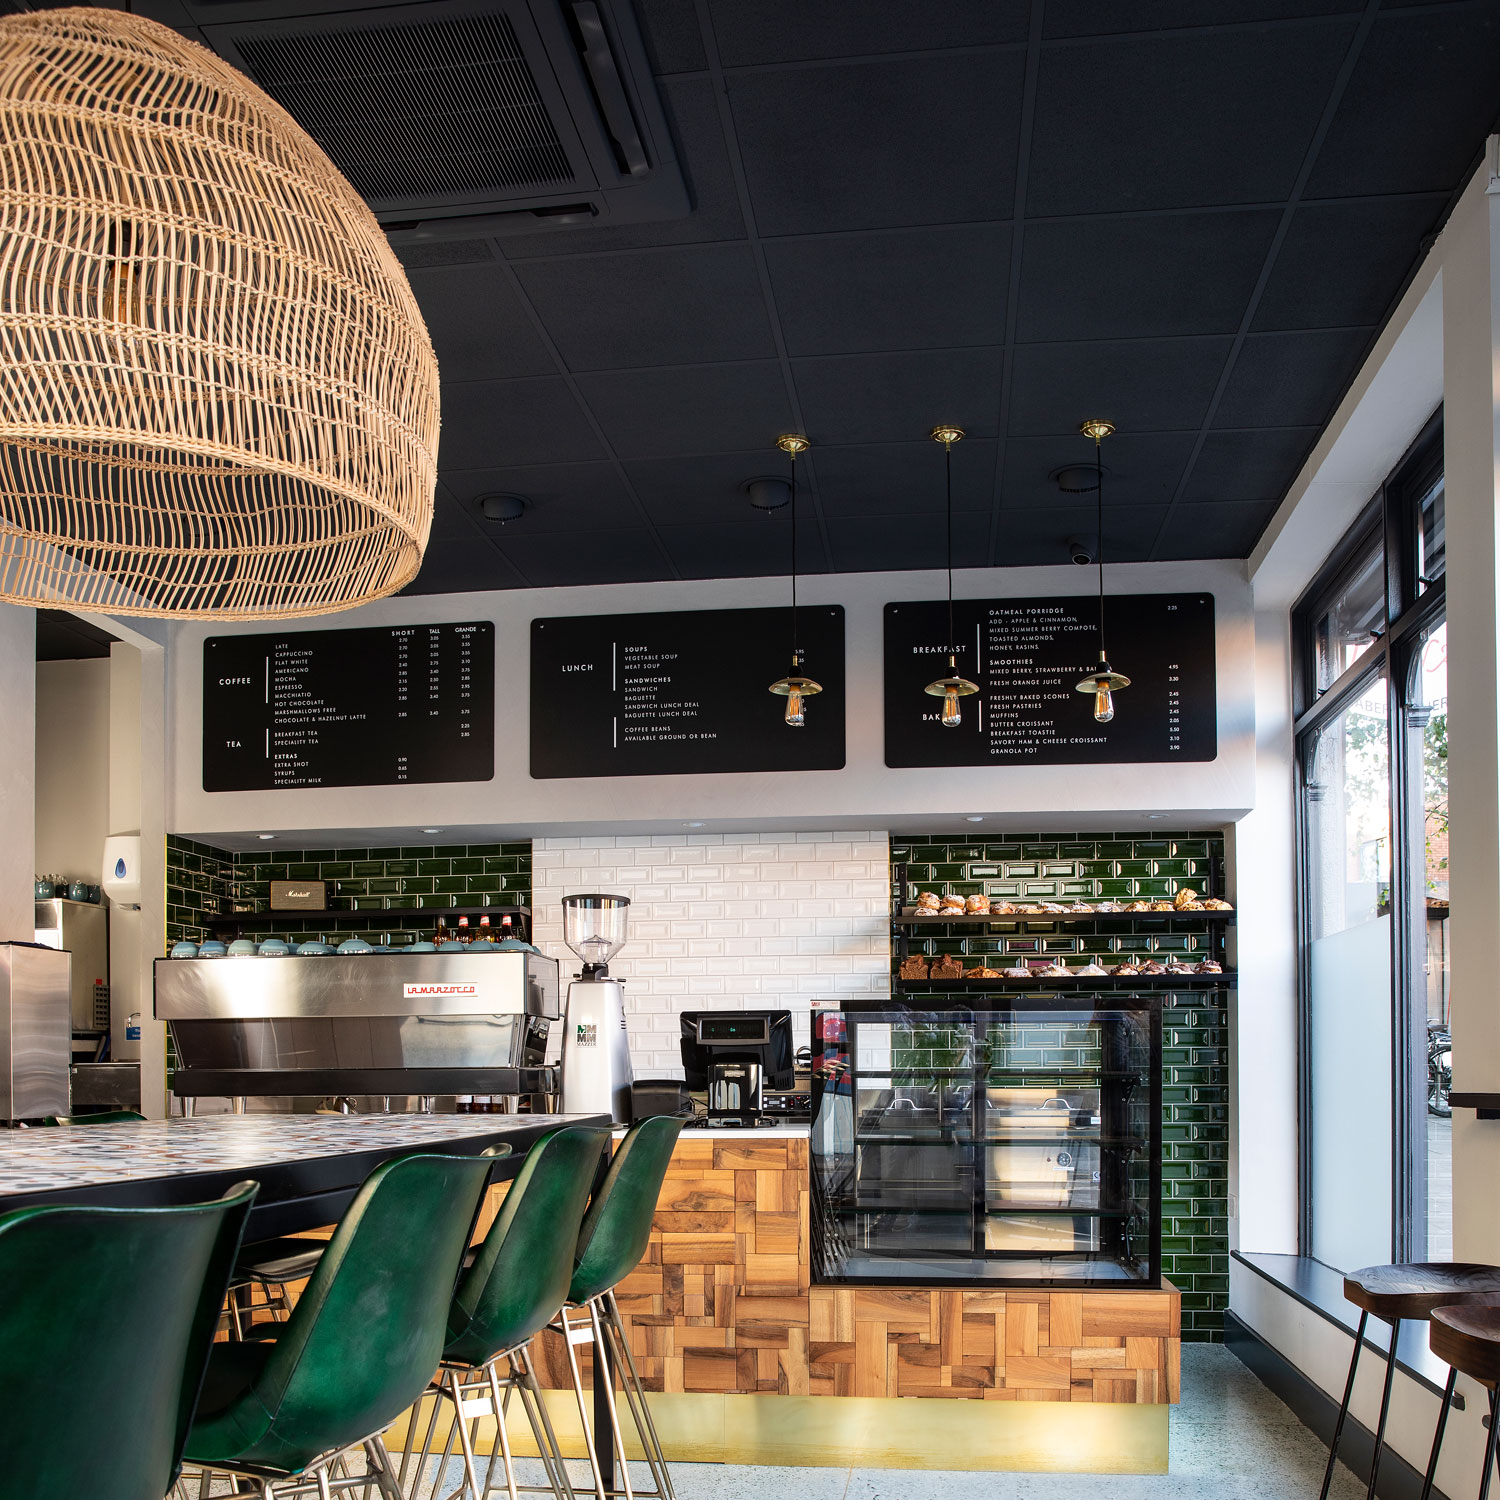 Vintage lighting complements the refurbished interior of this Dublin café